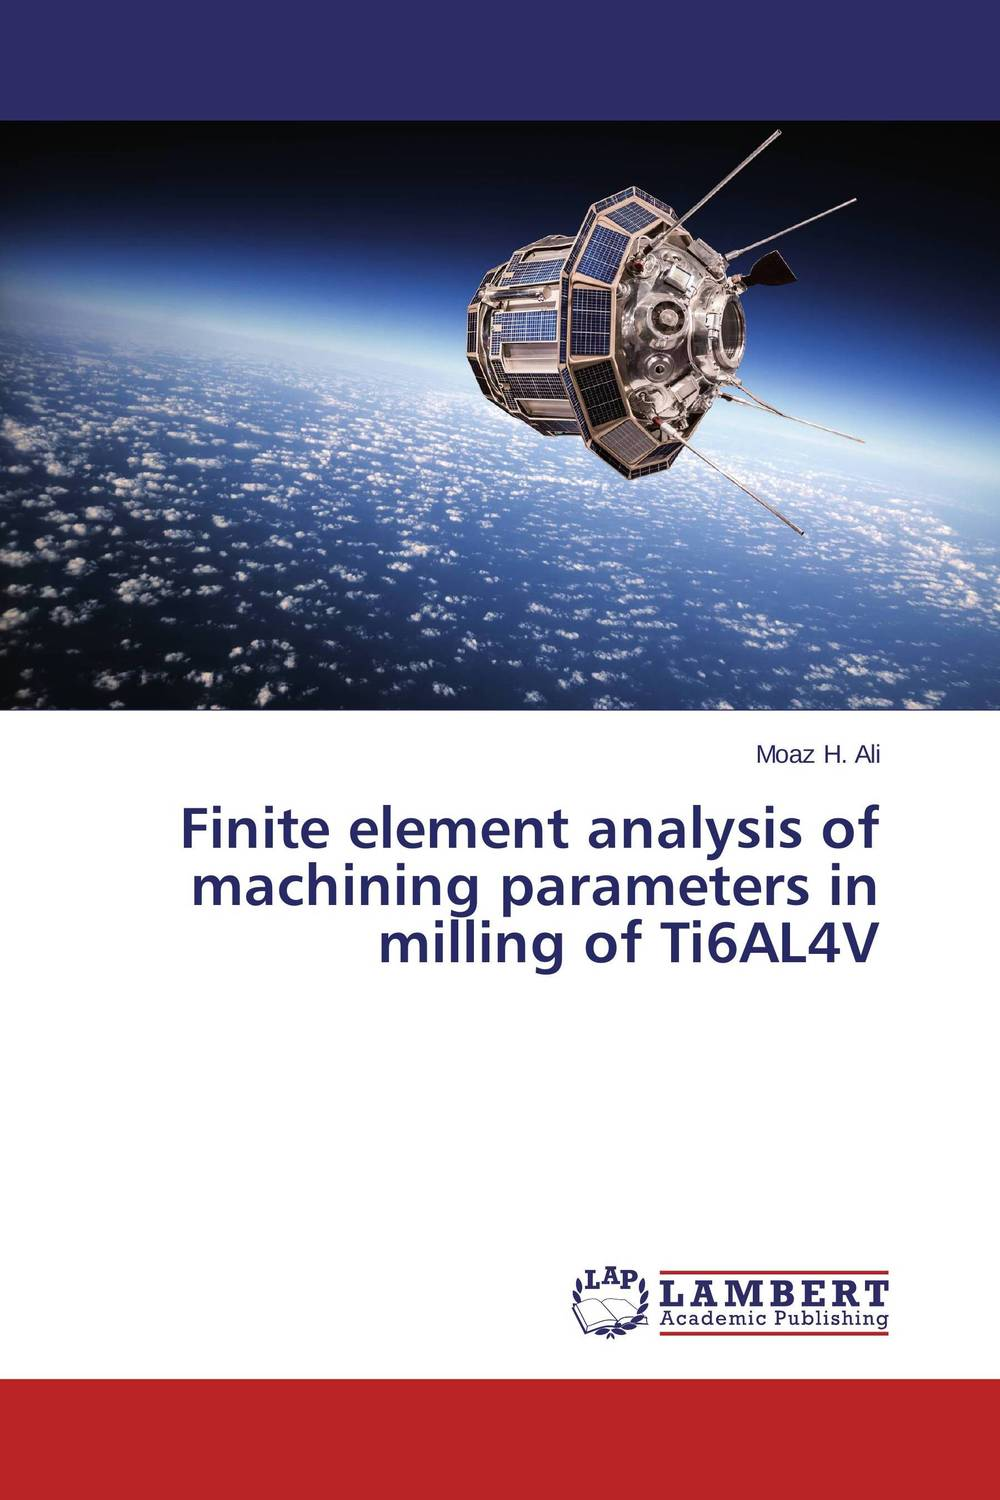 Finite element analysis of machining parameters in milling of Ti6AL4V rd cook cook concepts and applications of finite element analysis 2ed